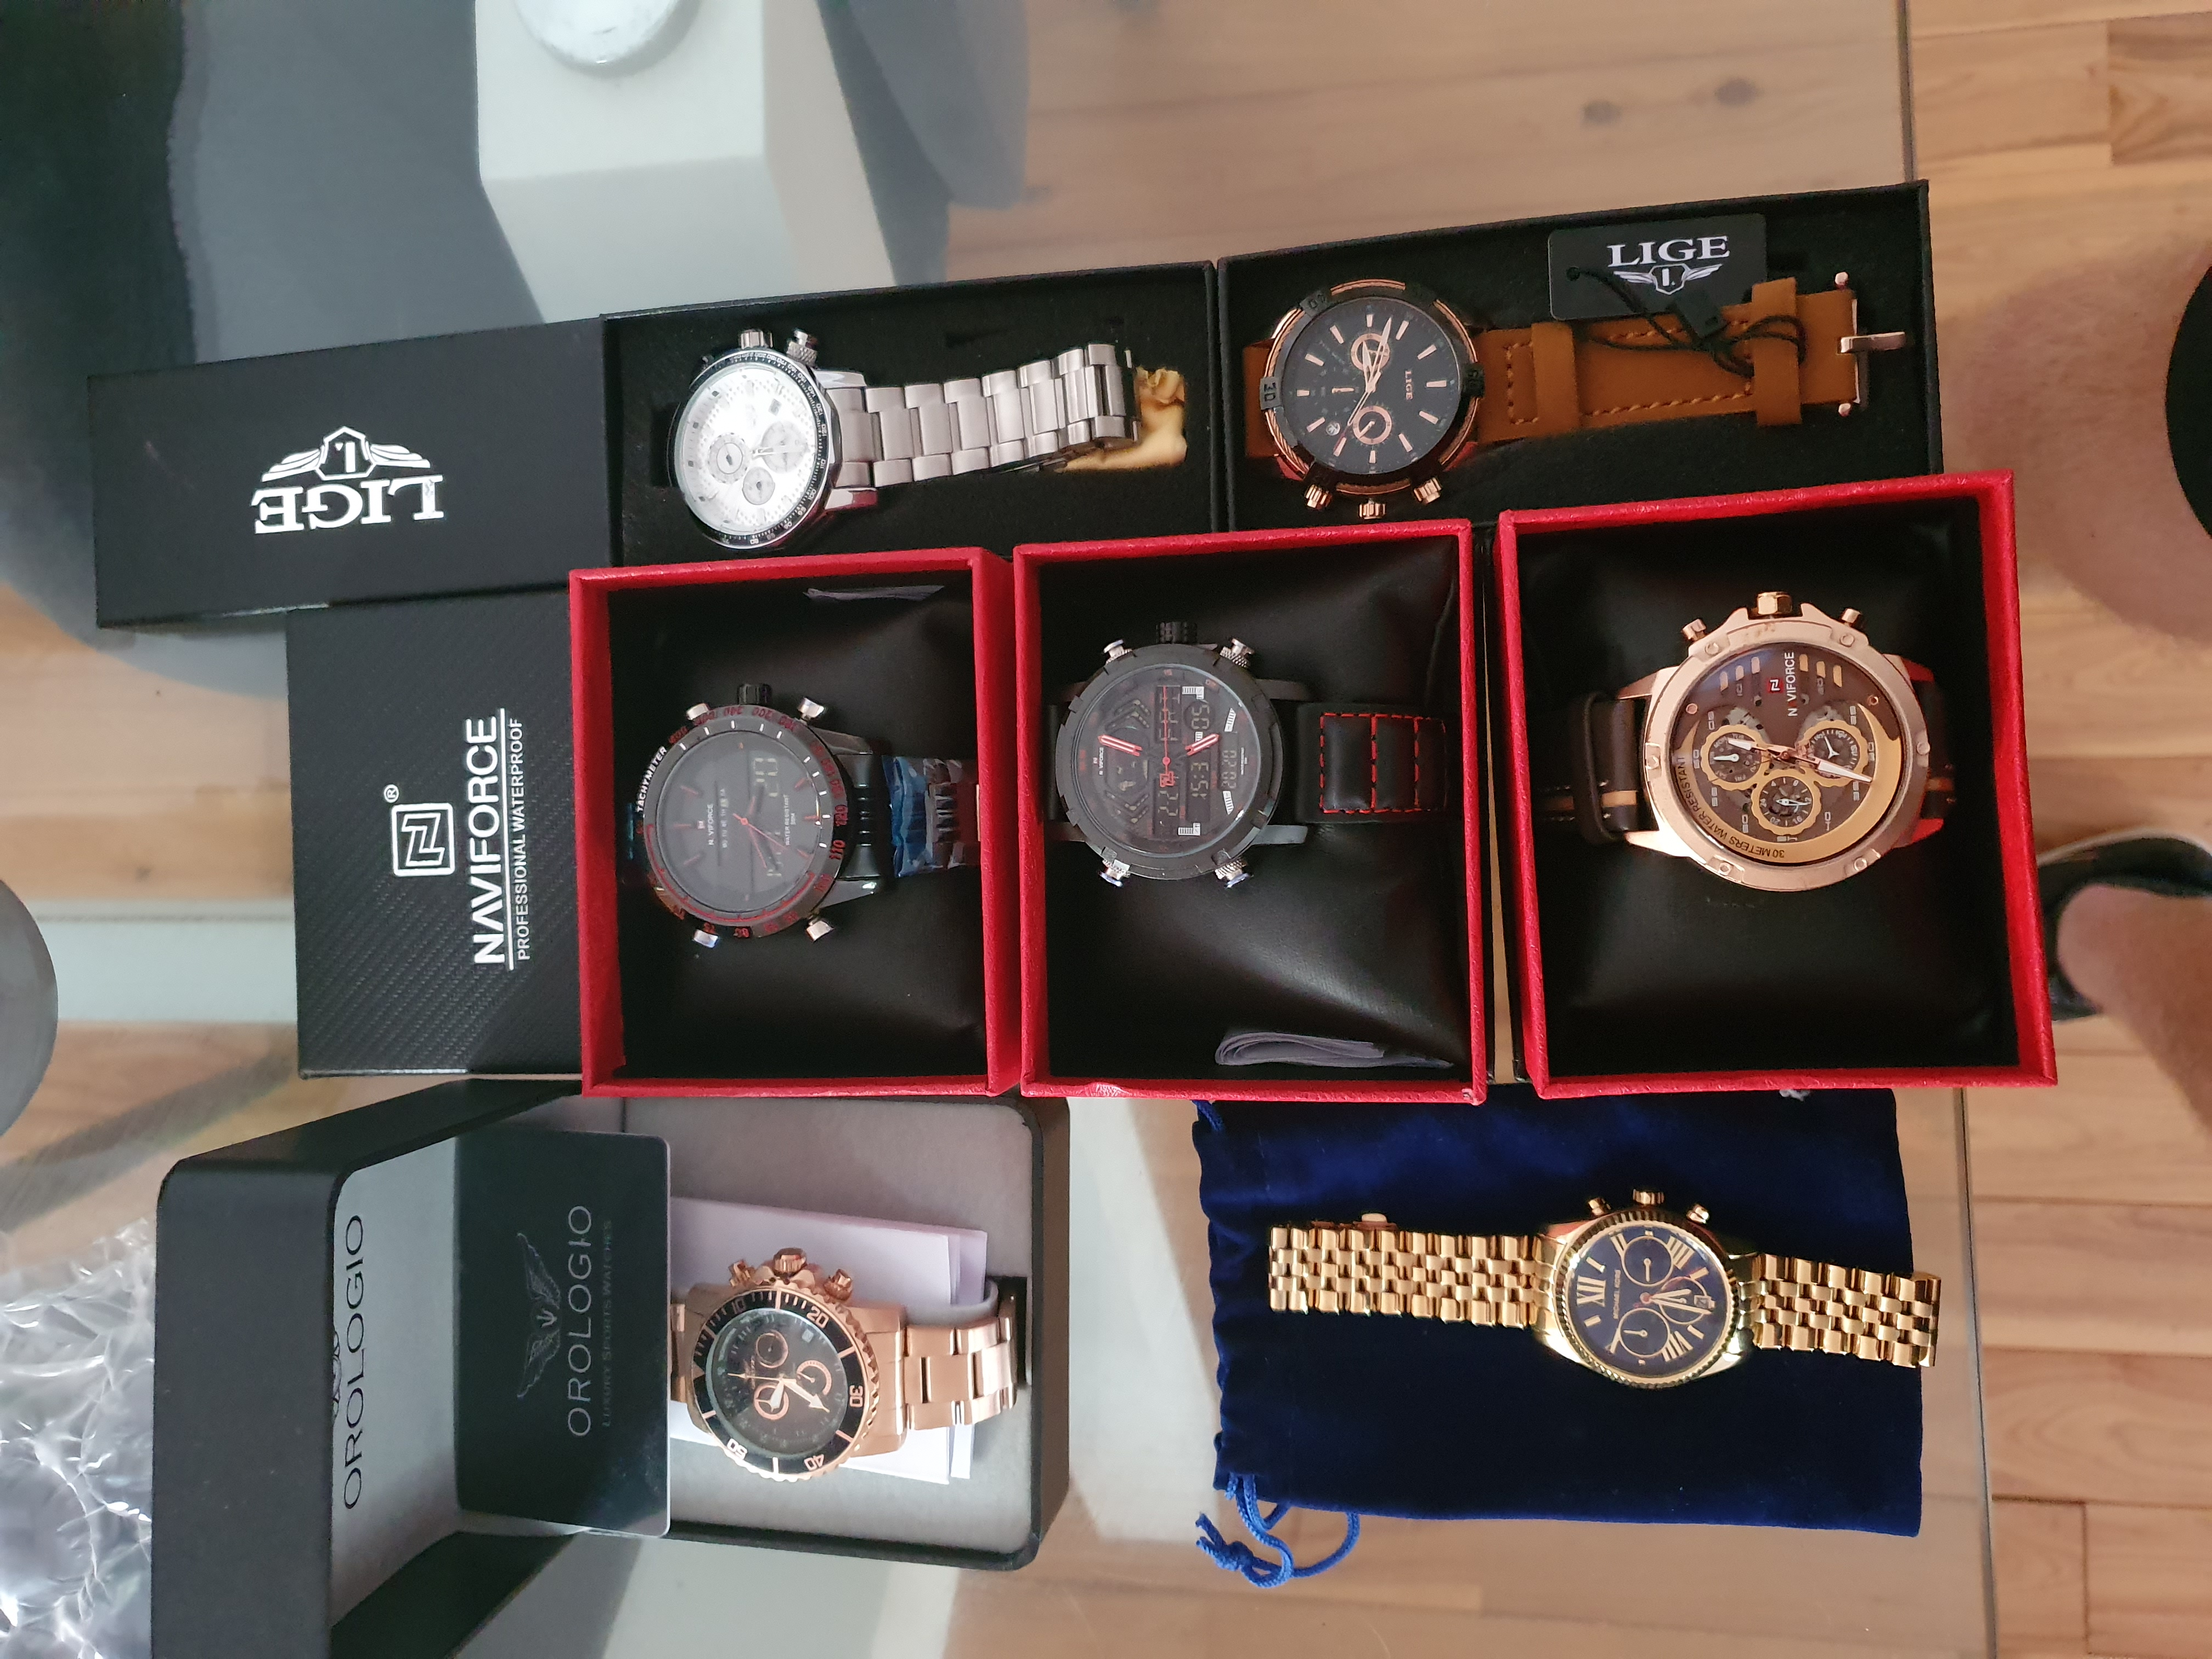 7 Genuine Watchs With Good Brands Worth Nearly 5K Up For Swaps